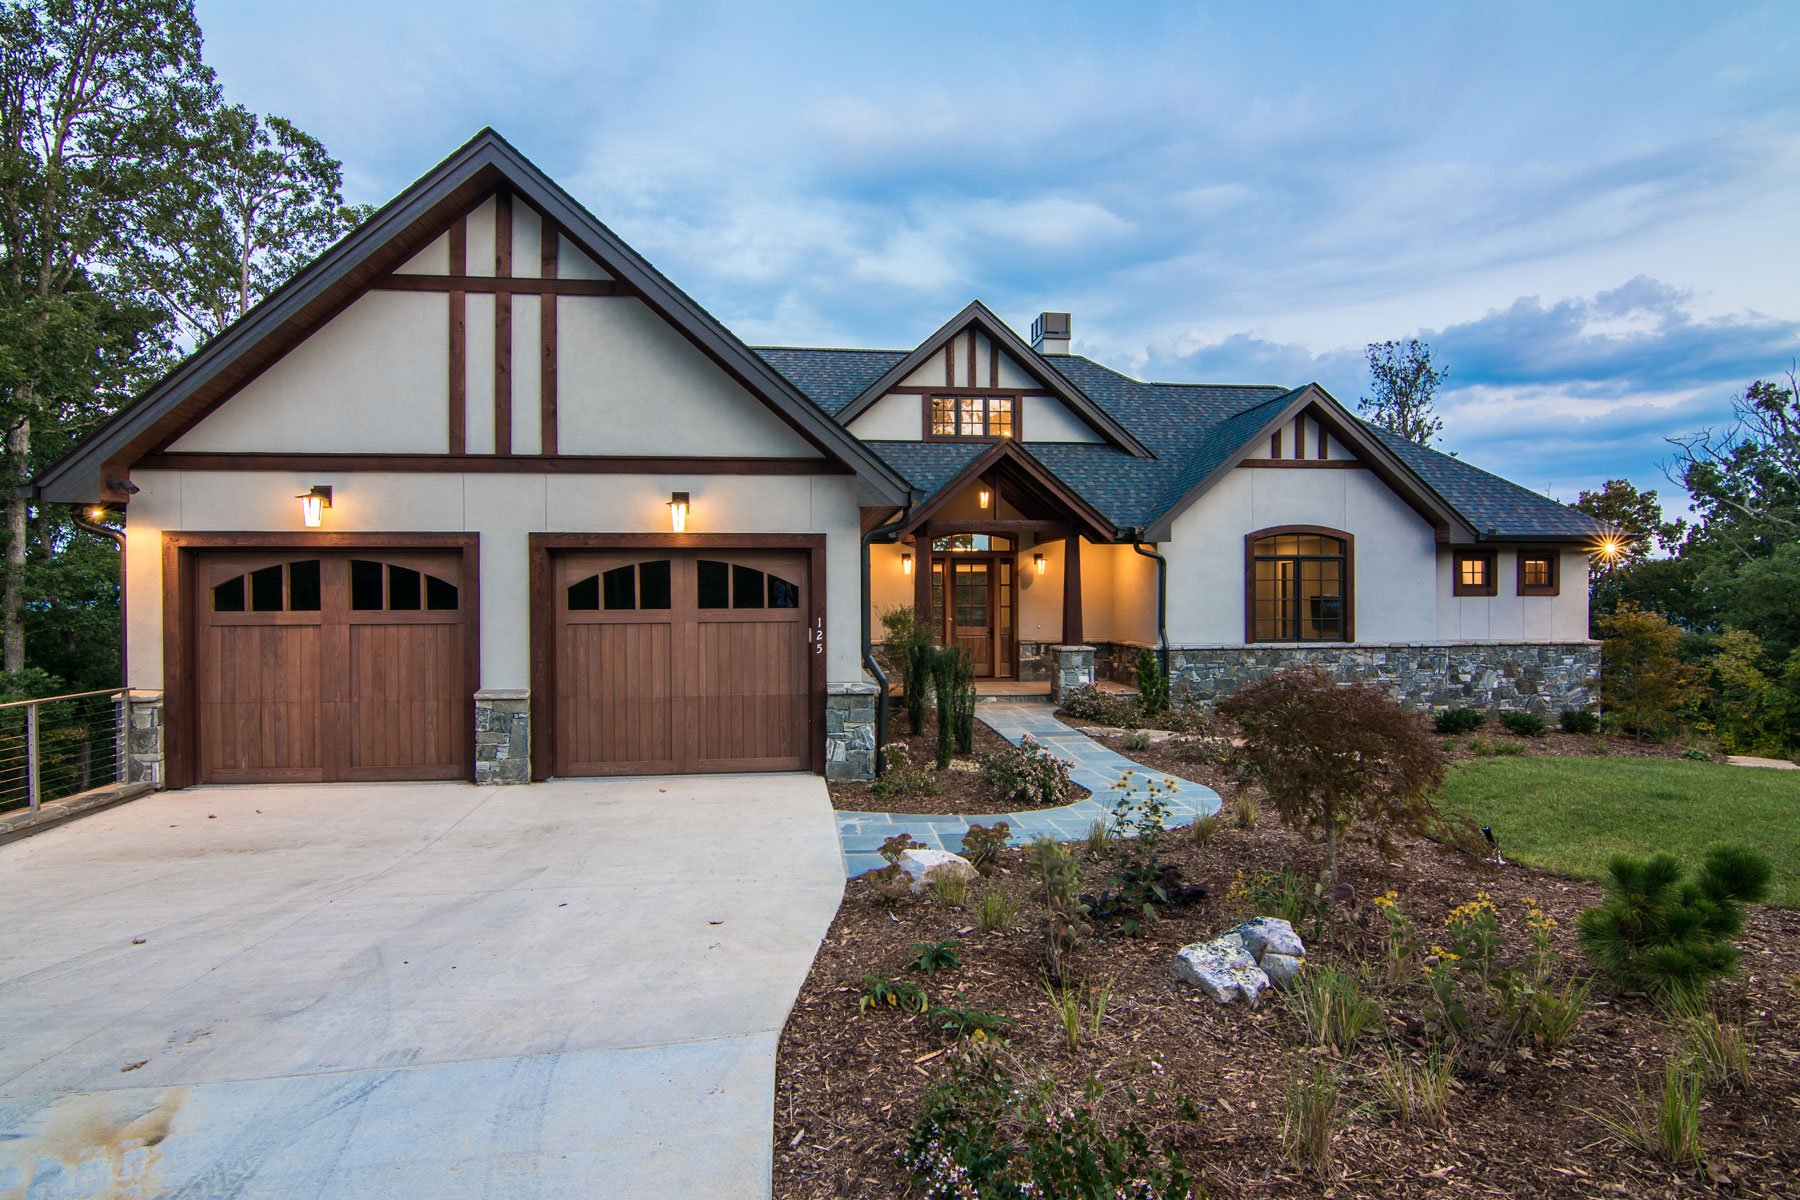 The Modern Style Craftsman Home